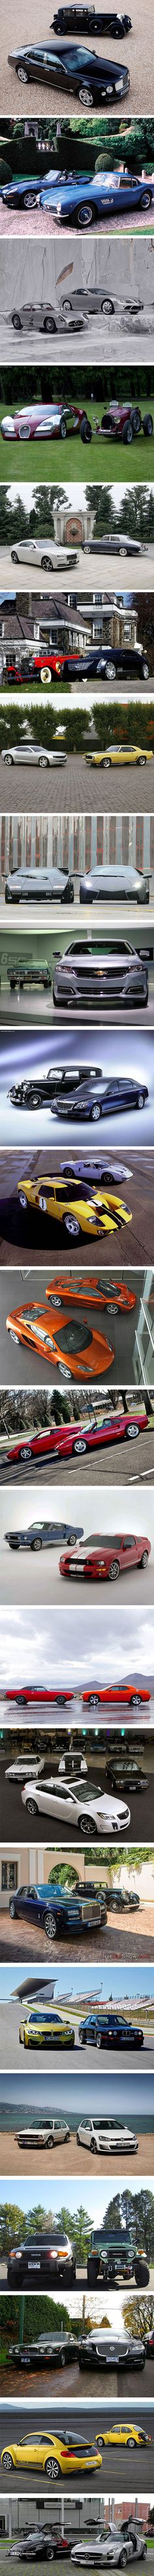 Same brand of car: Then vs. Now.